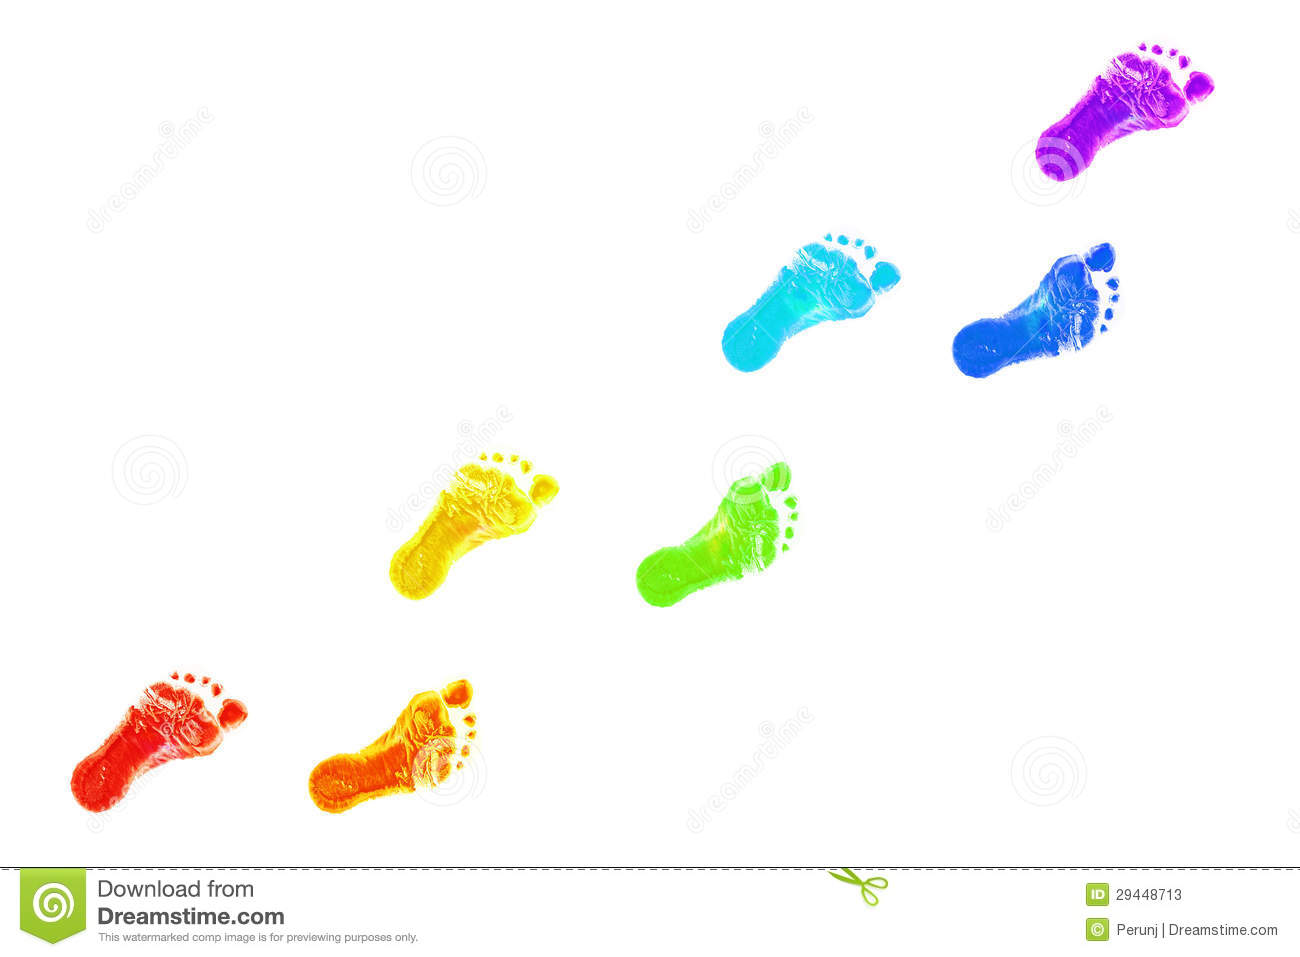 baby foot prints all colors of the rainbow stock photos baby footprint clip art mint baby footprint clipart border free